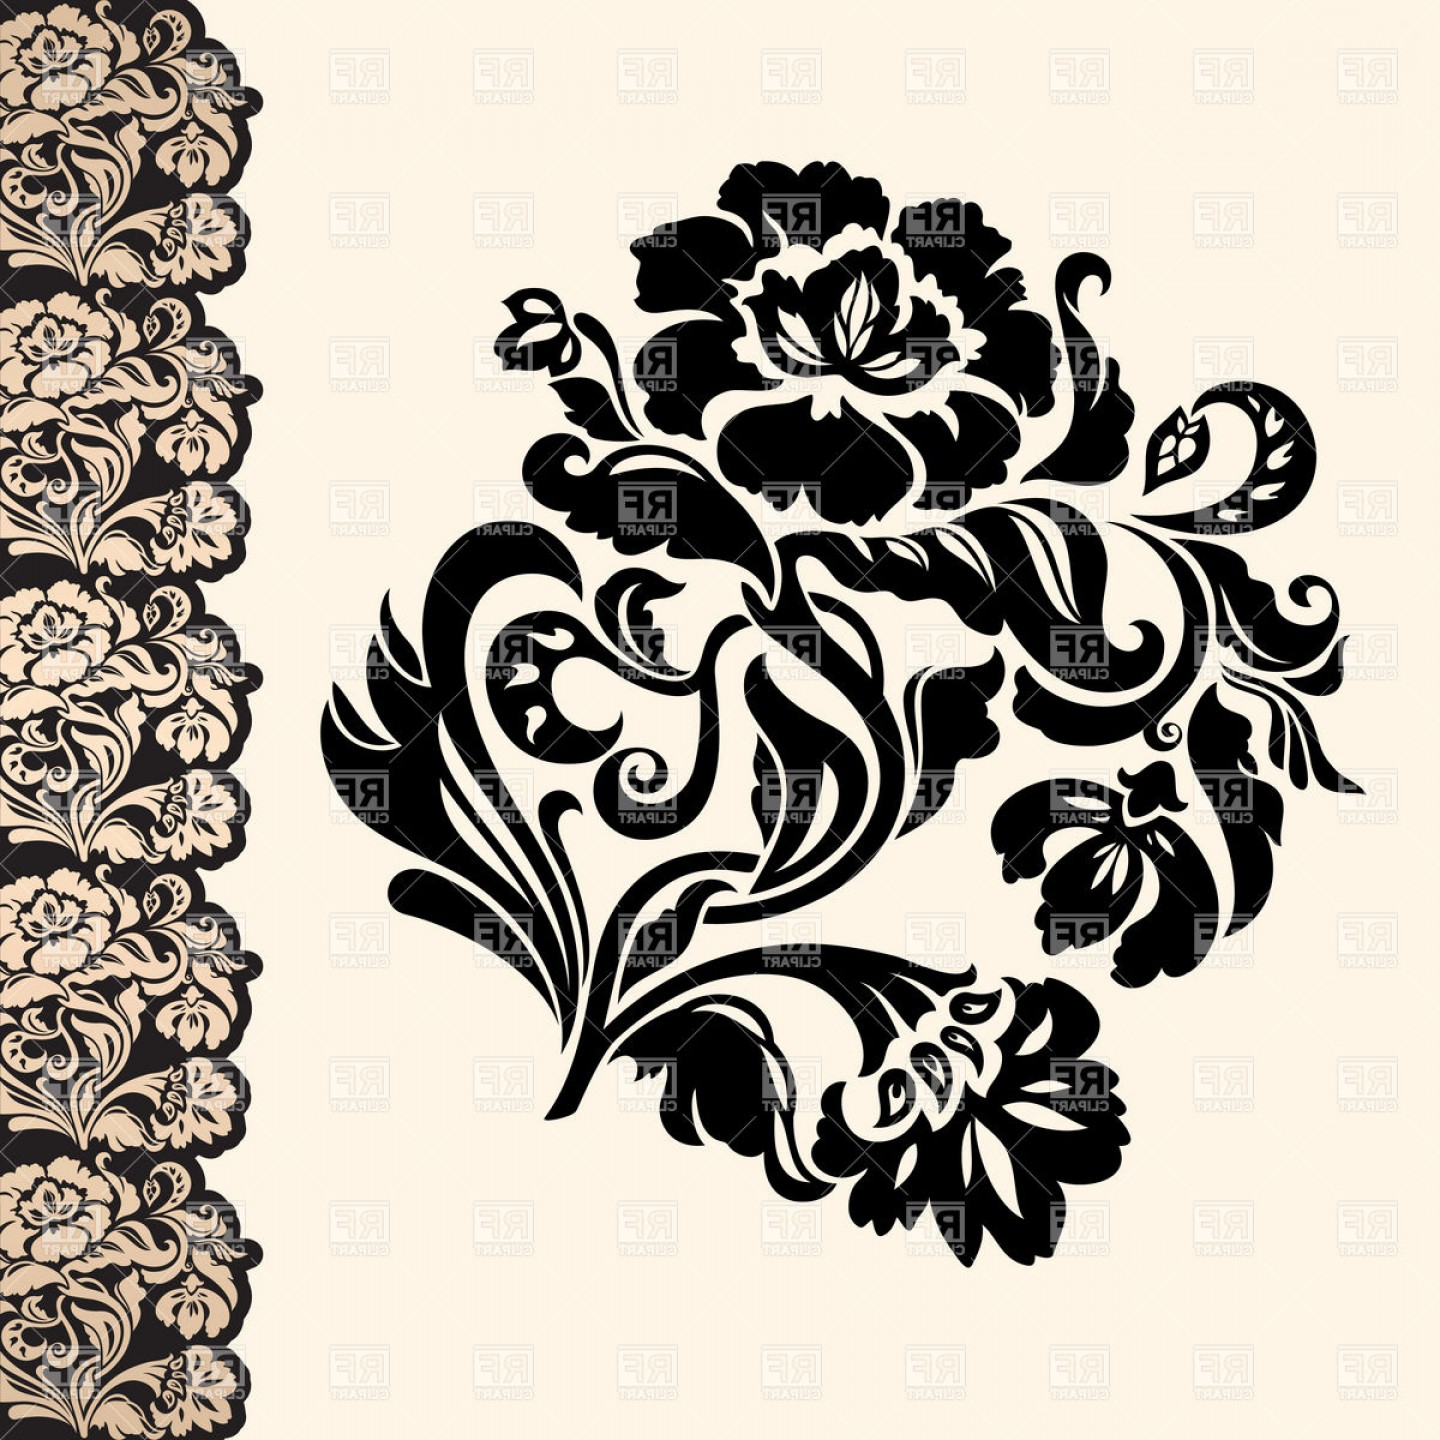 Victorian Motif Vector: Victorian Floral Design Element With Lacy Border Vector Clipart